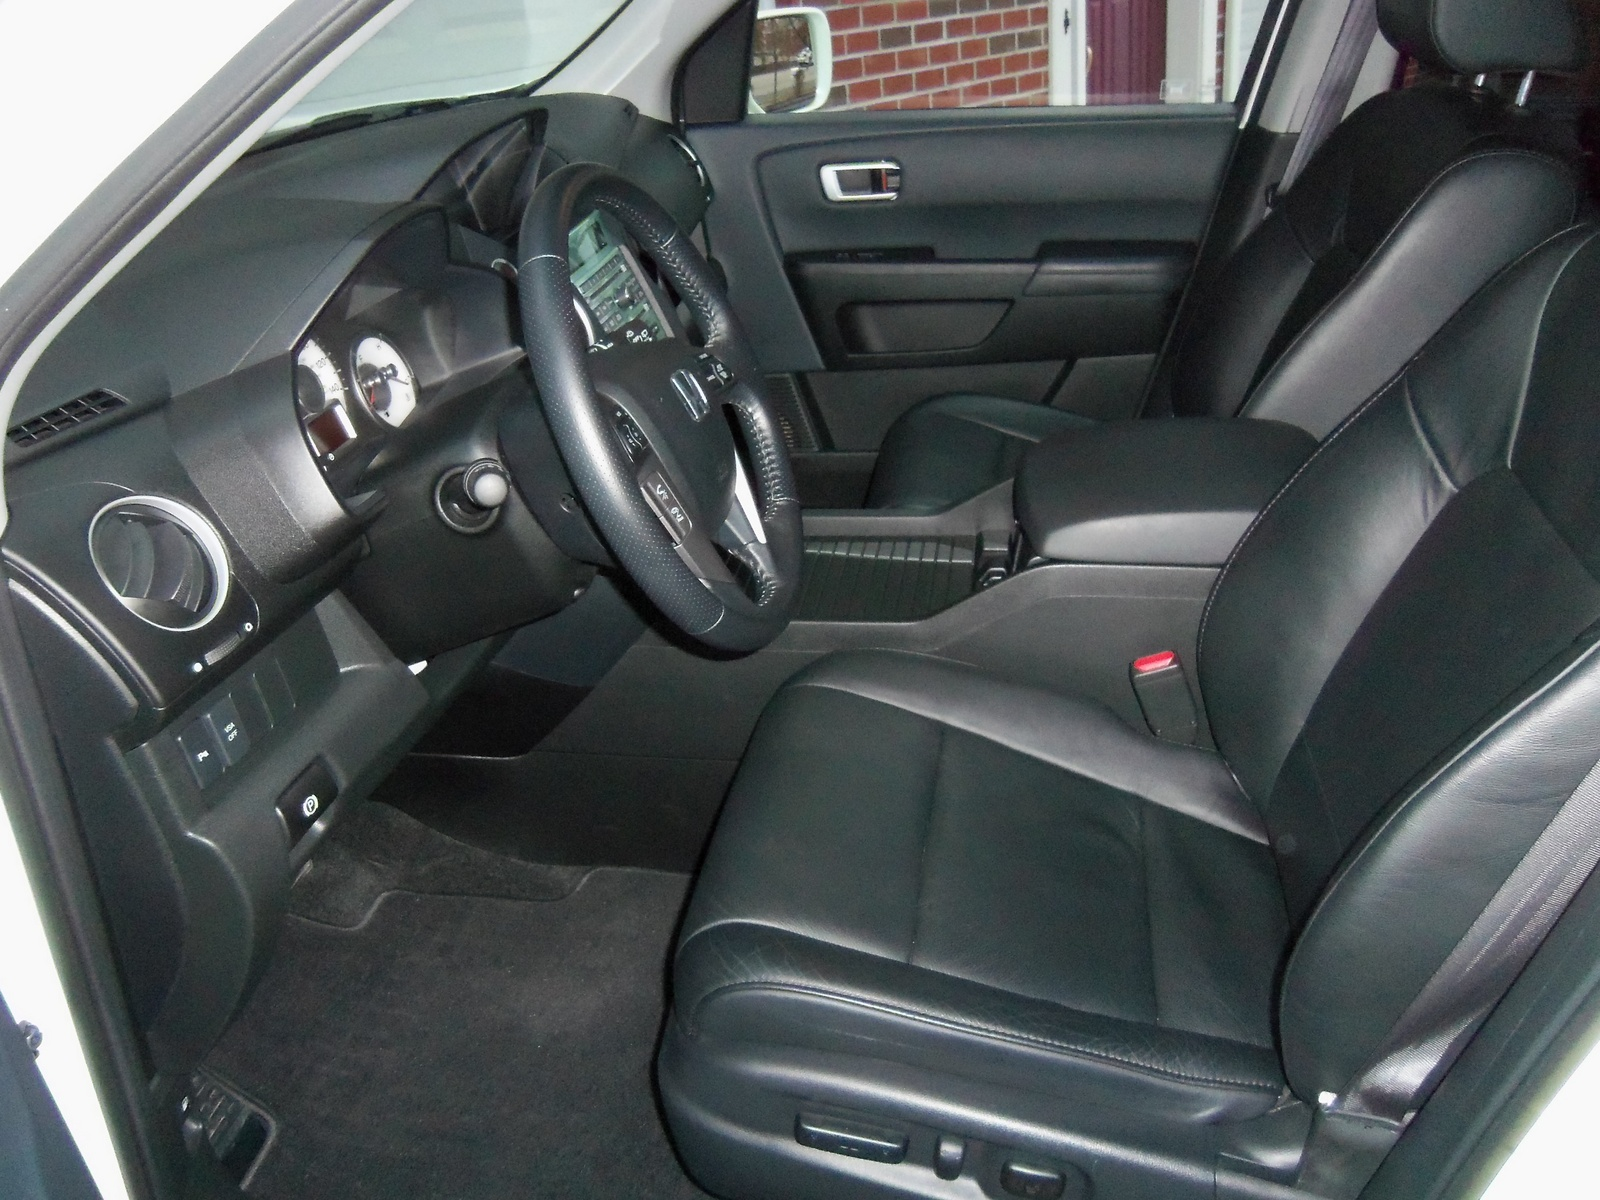 2011 honda pilot interior pictures cargurus. Black Bedroom Furniture Sets. Home Design Ideas